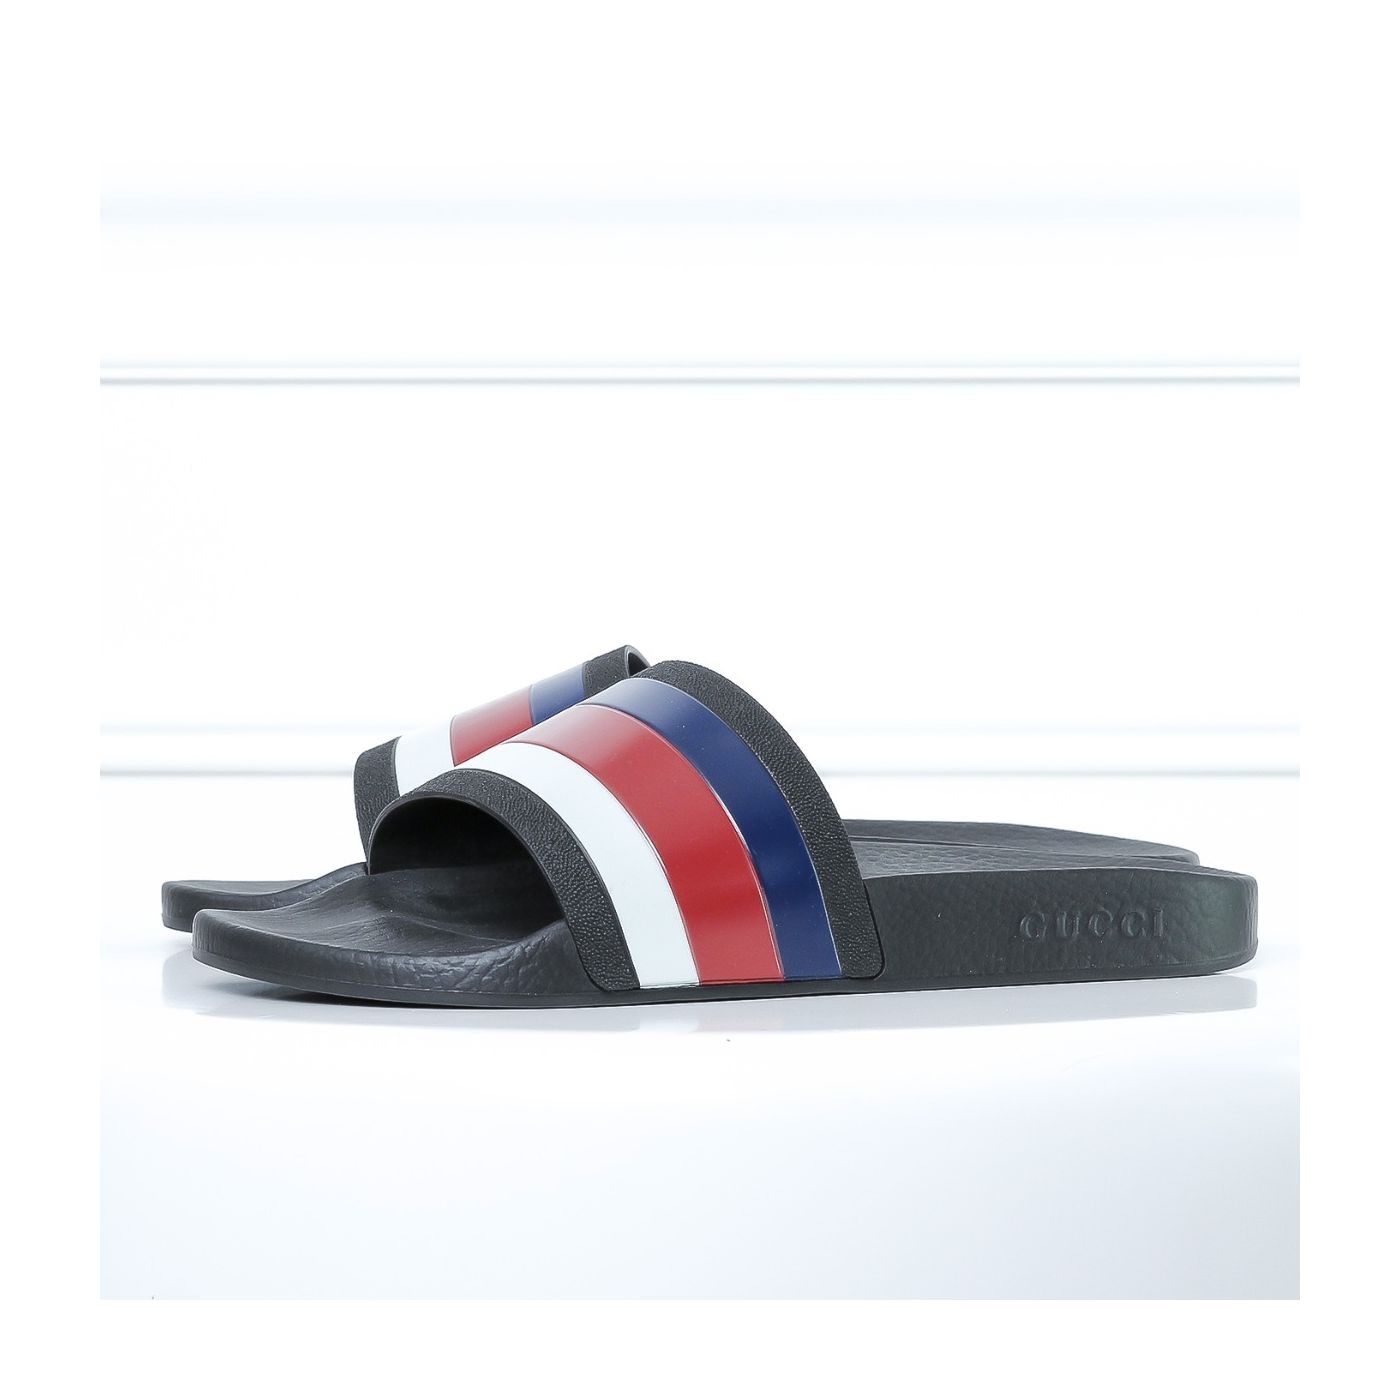 Gucci Black Men's Sandals 9